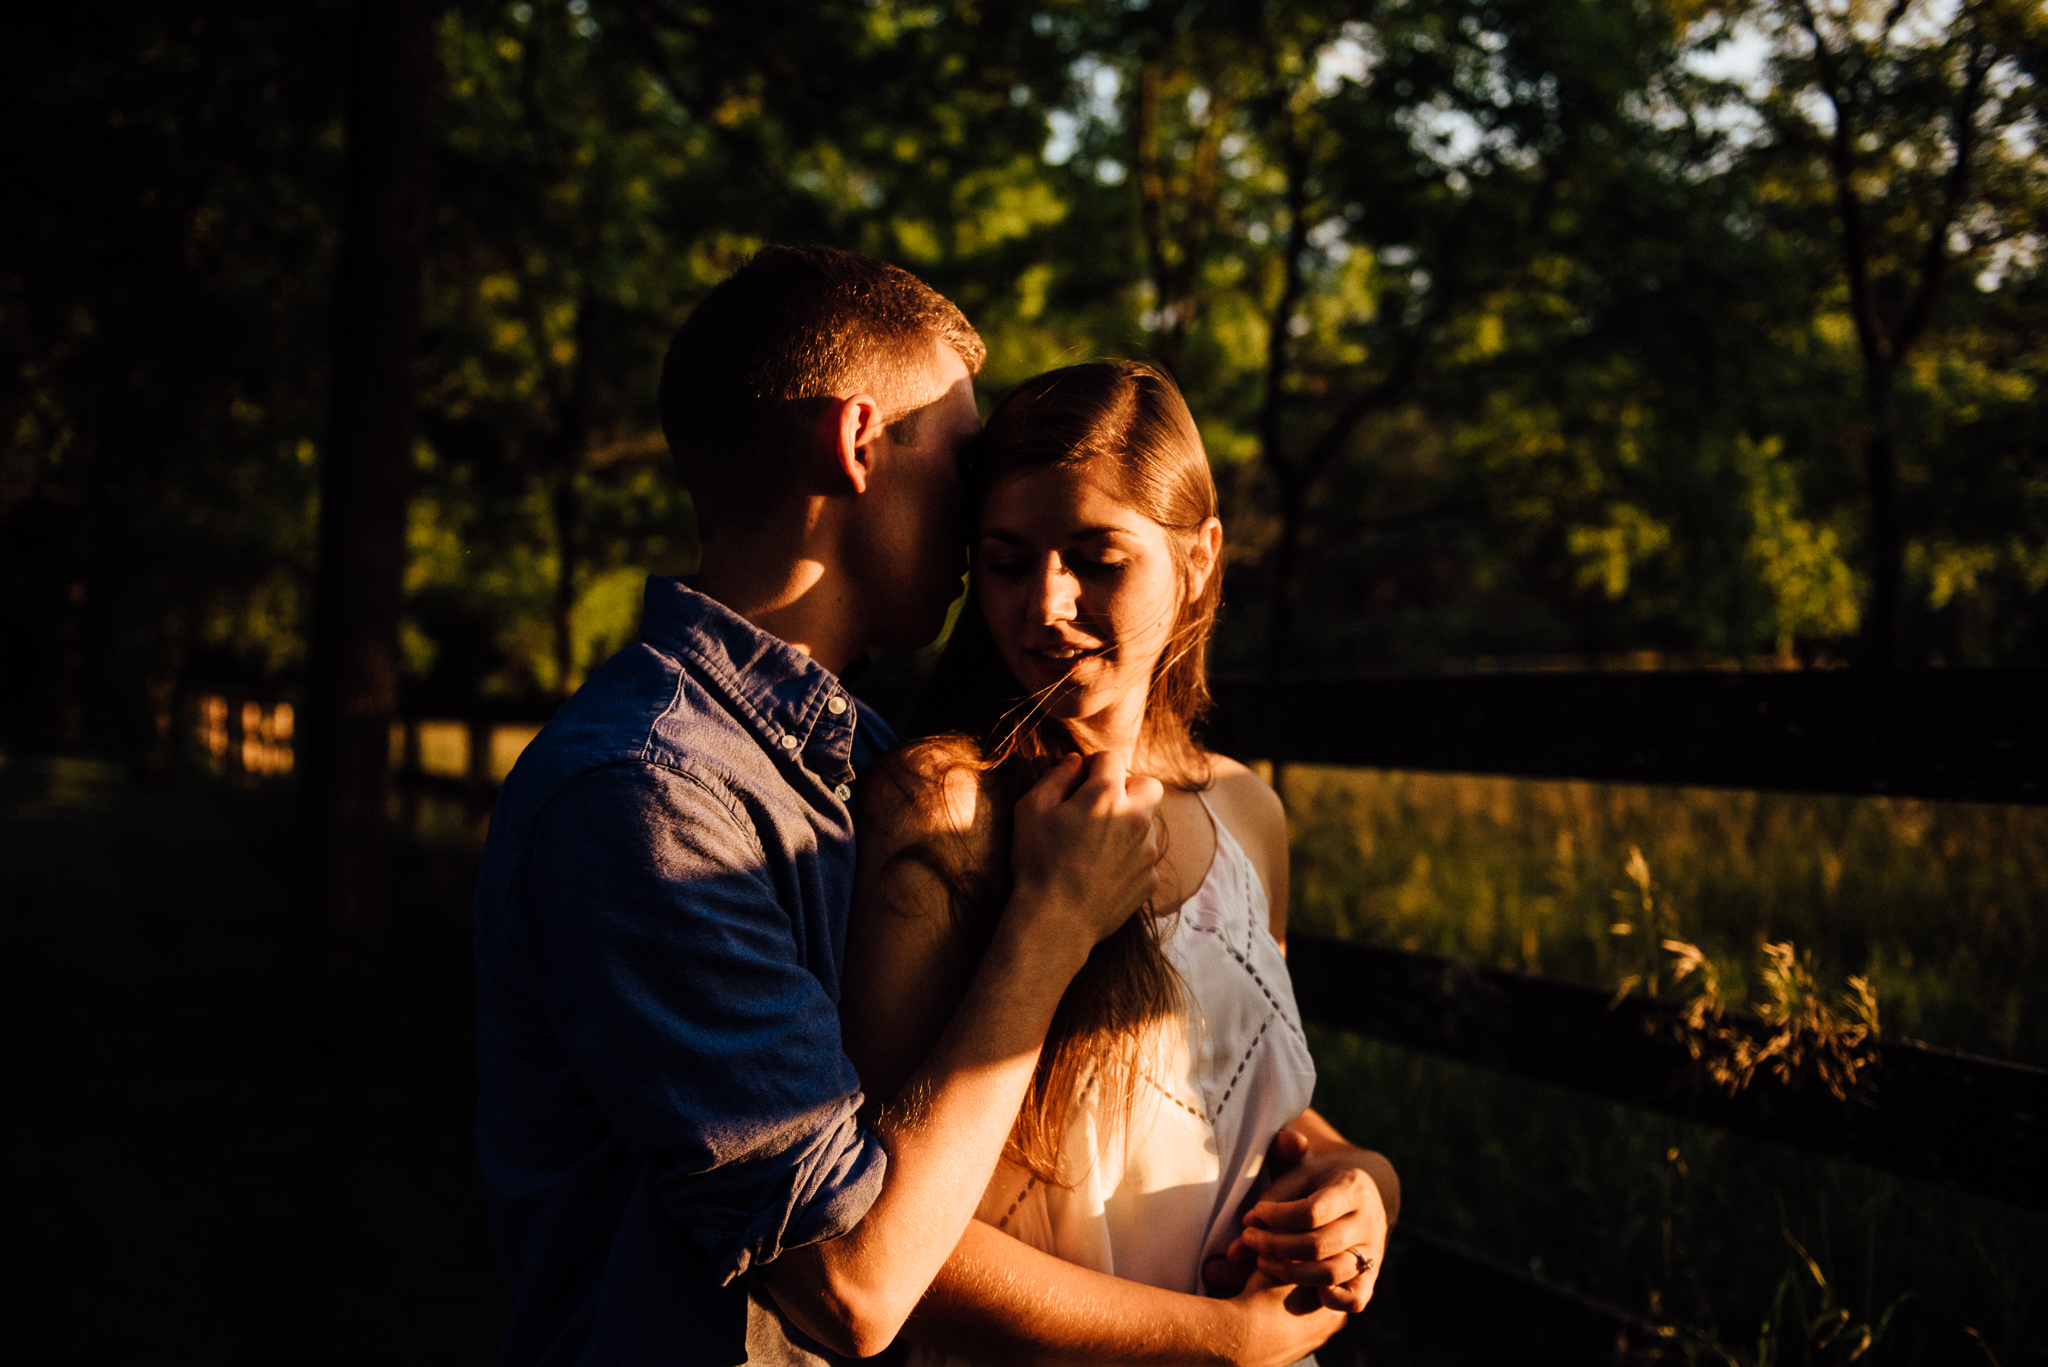 Clarkston Michigan Engagement Photographer | Miss Lyss Photography | www.misslyssphotography.com